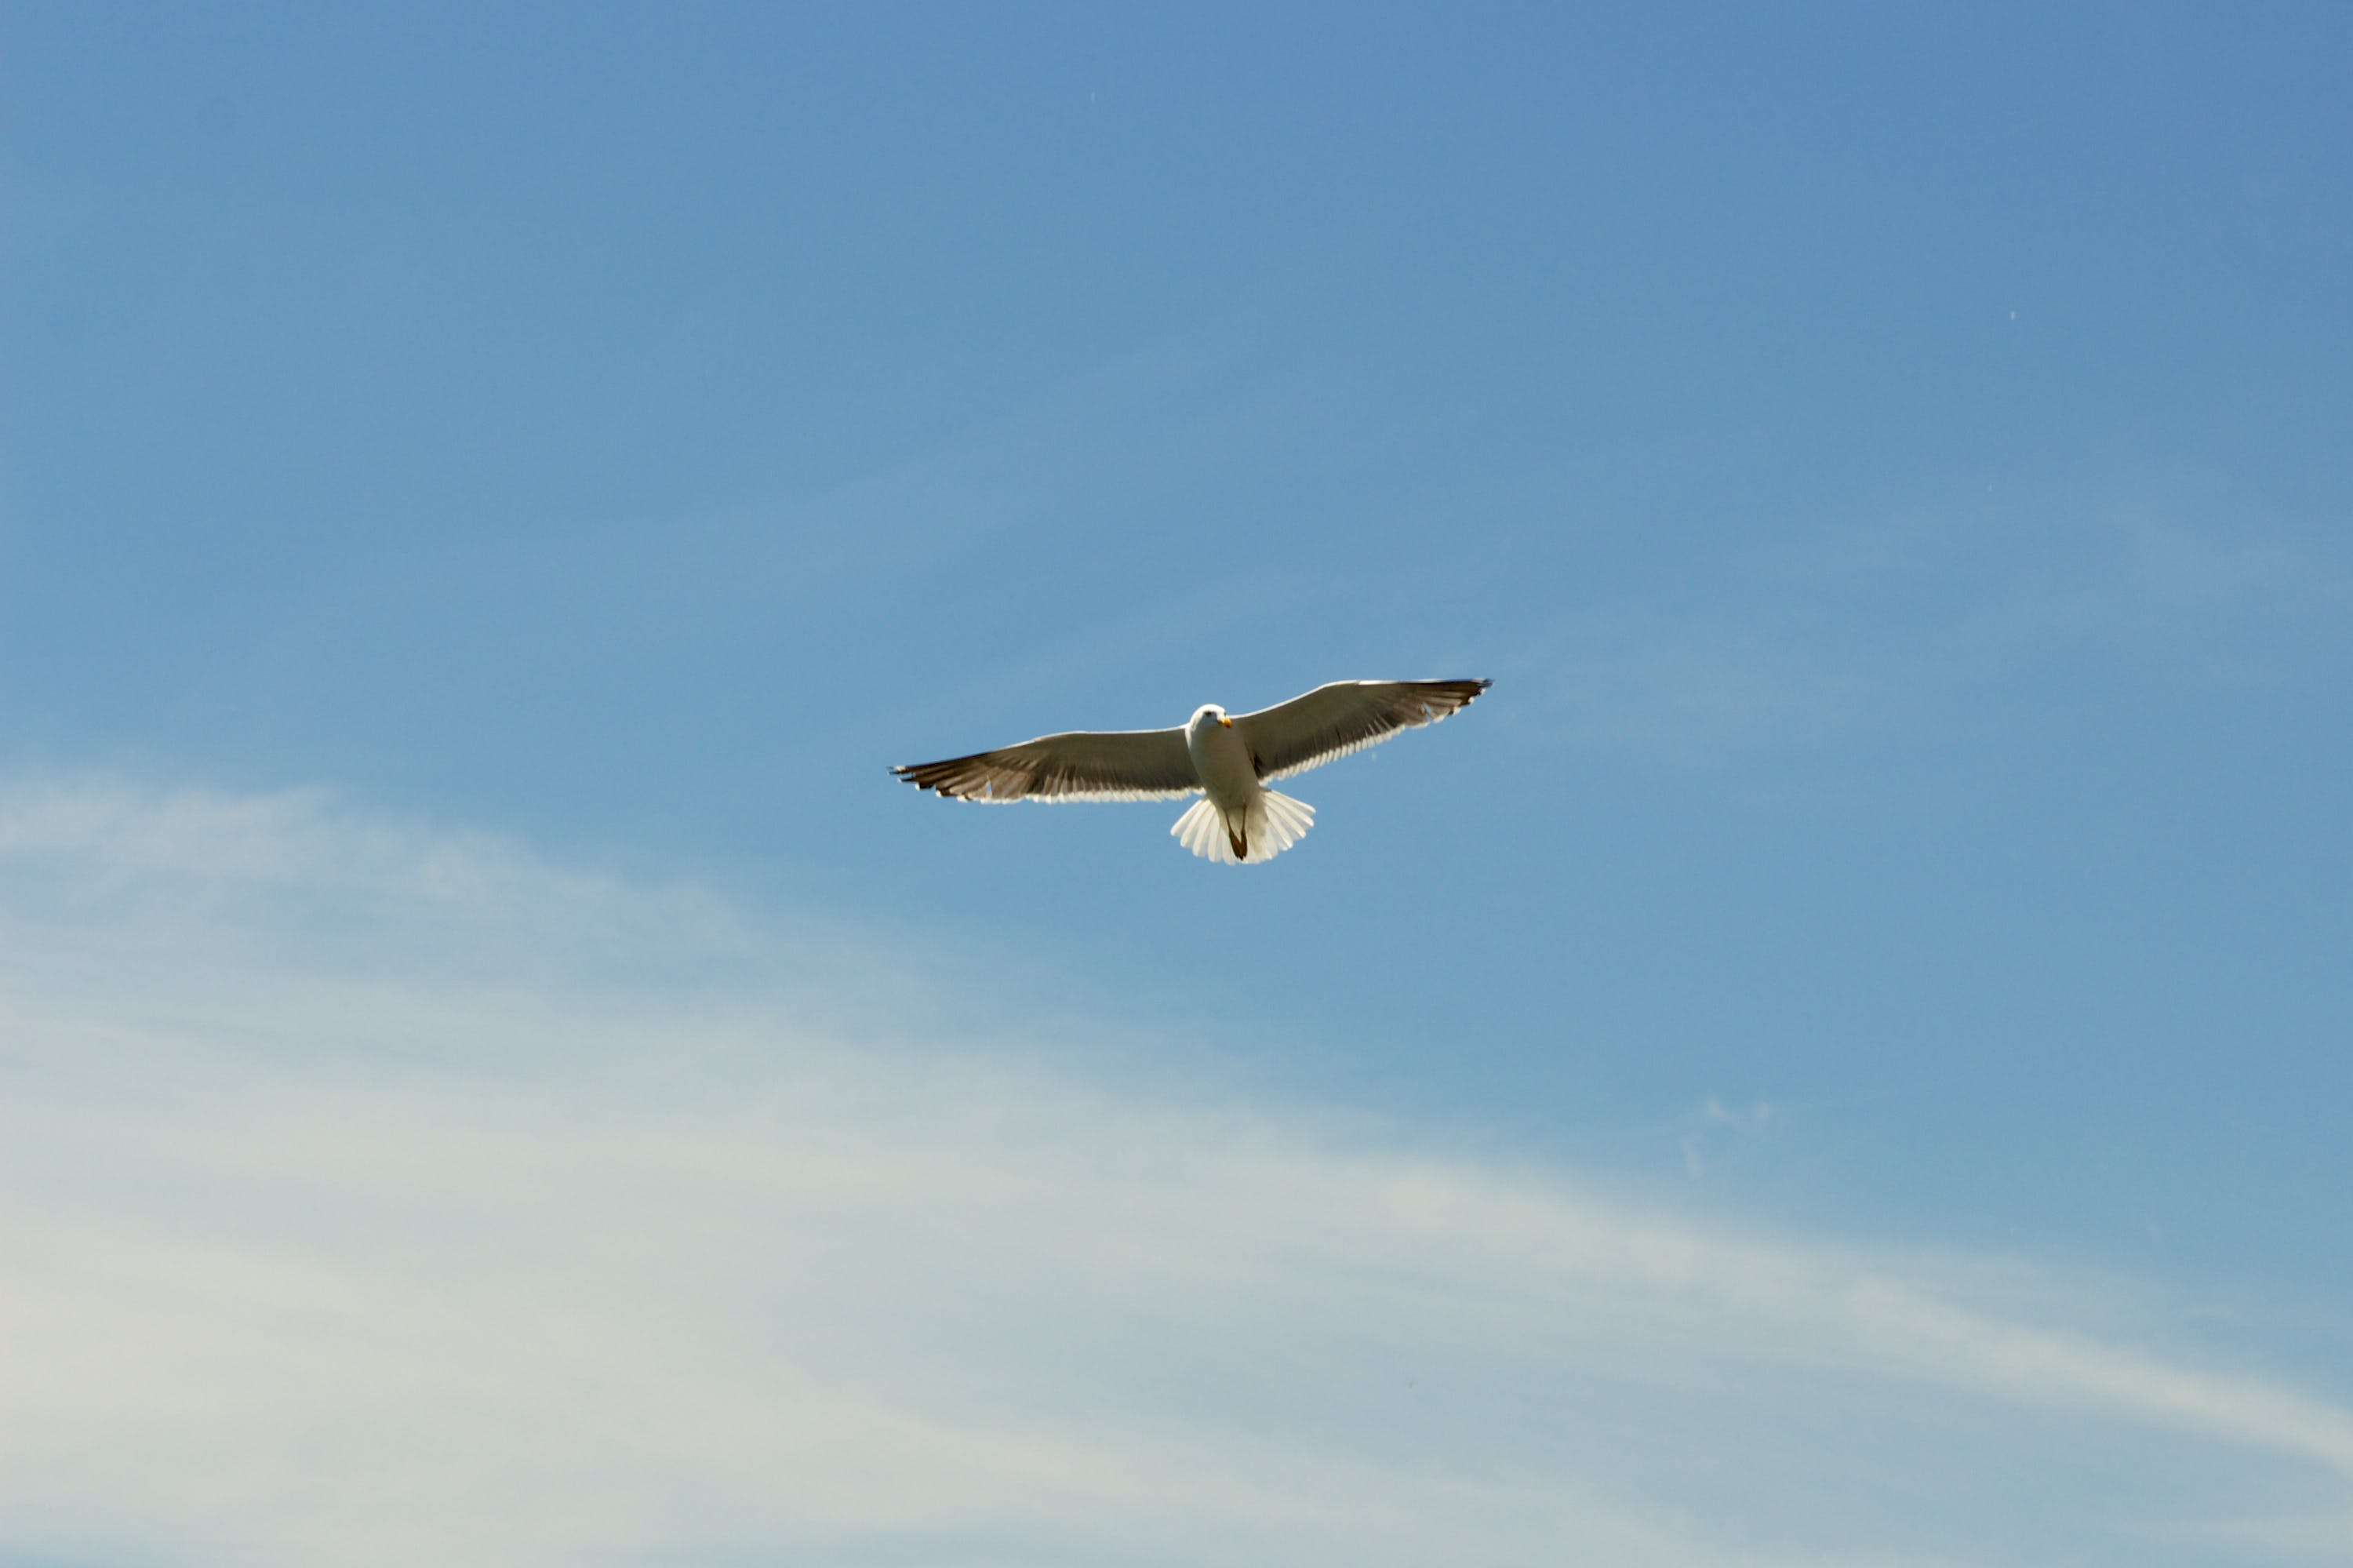 Flying White Kite